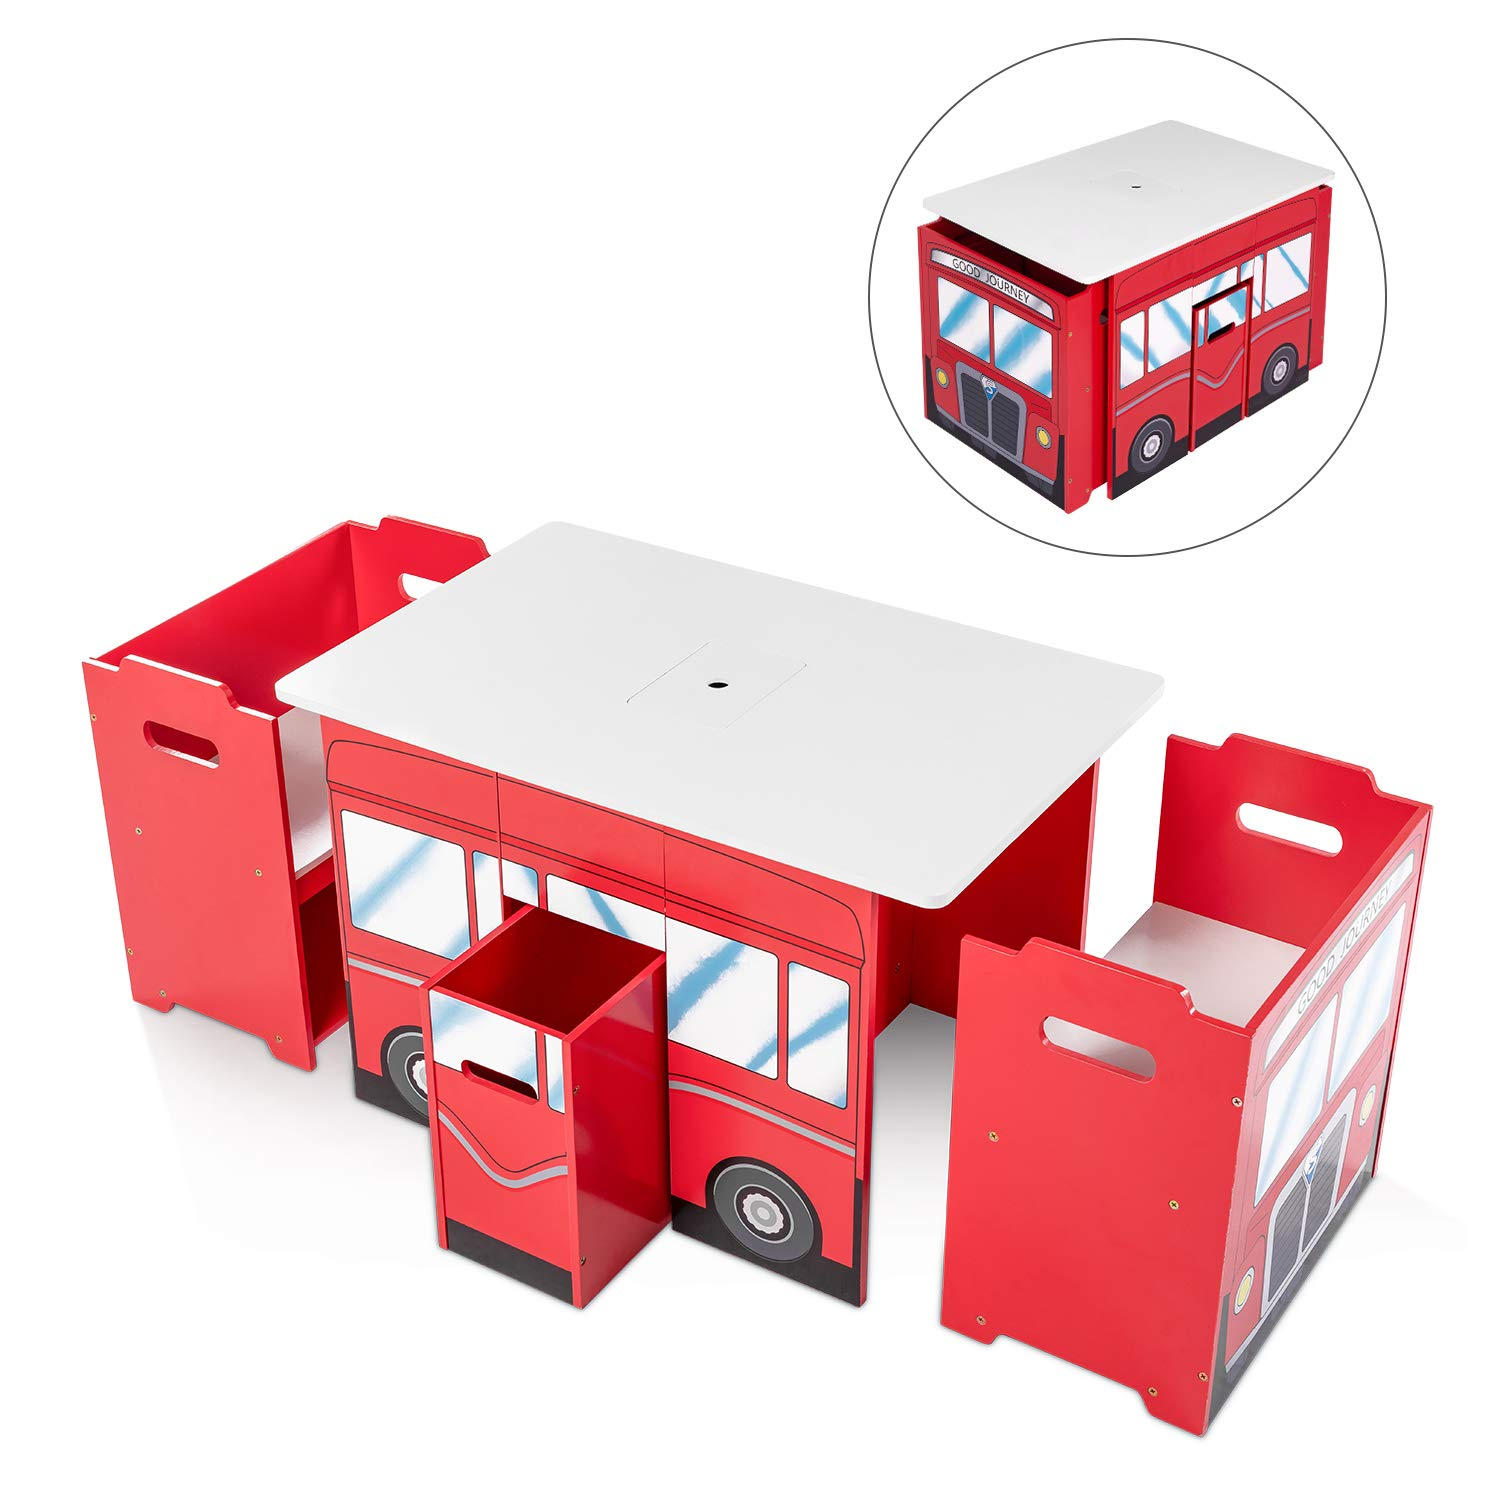 RUUF Kids Table and Chairs Set with Storage Bins, Activity Table for Toddler, Adaptable Play Table (2 Chairs Included), Red Bus Shaped Playroom Furniture by RUUF